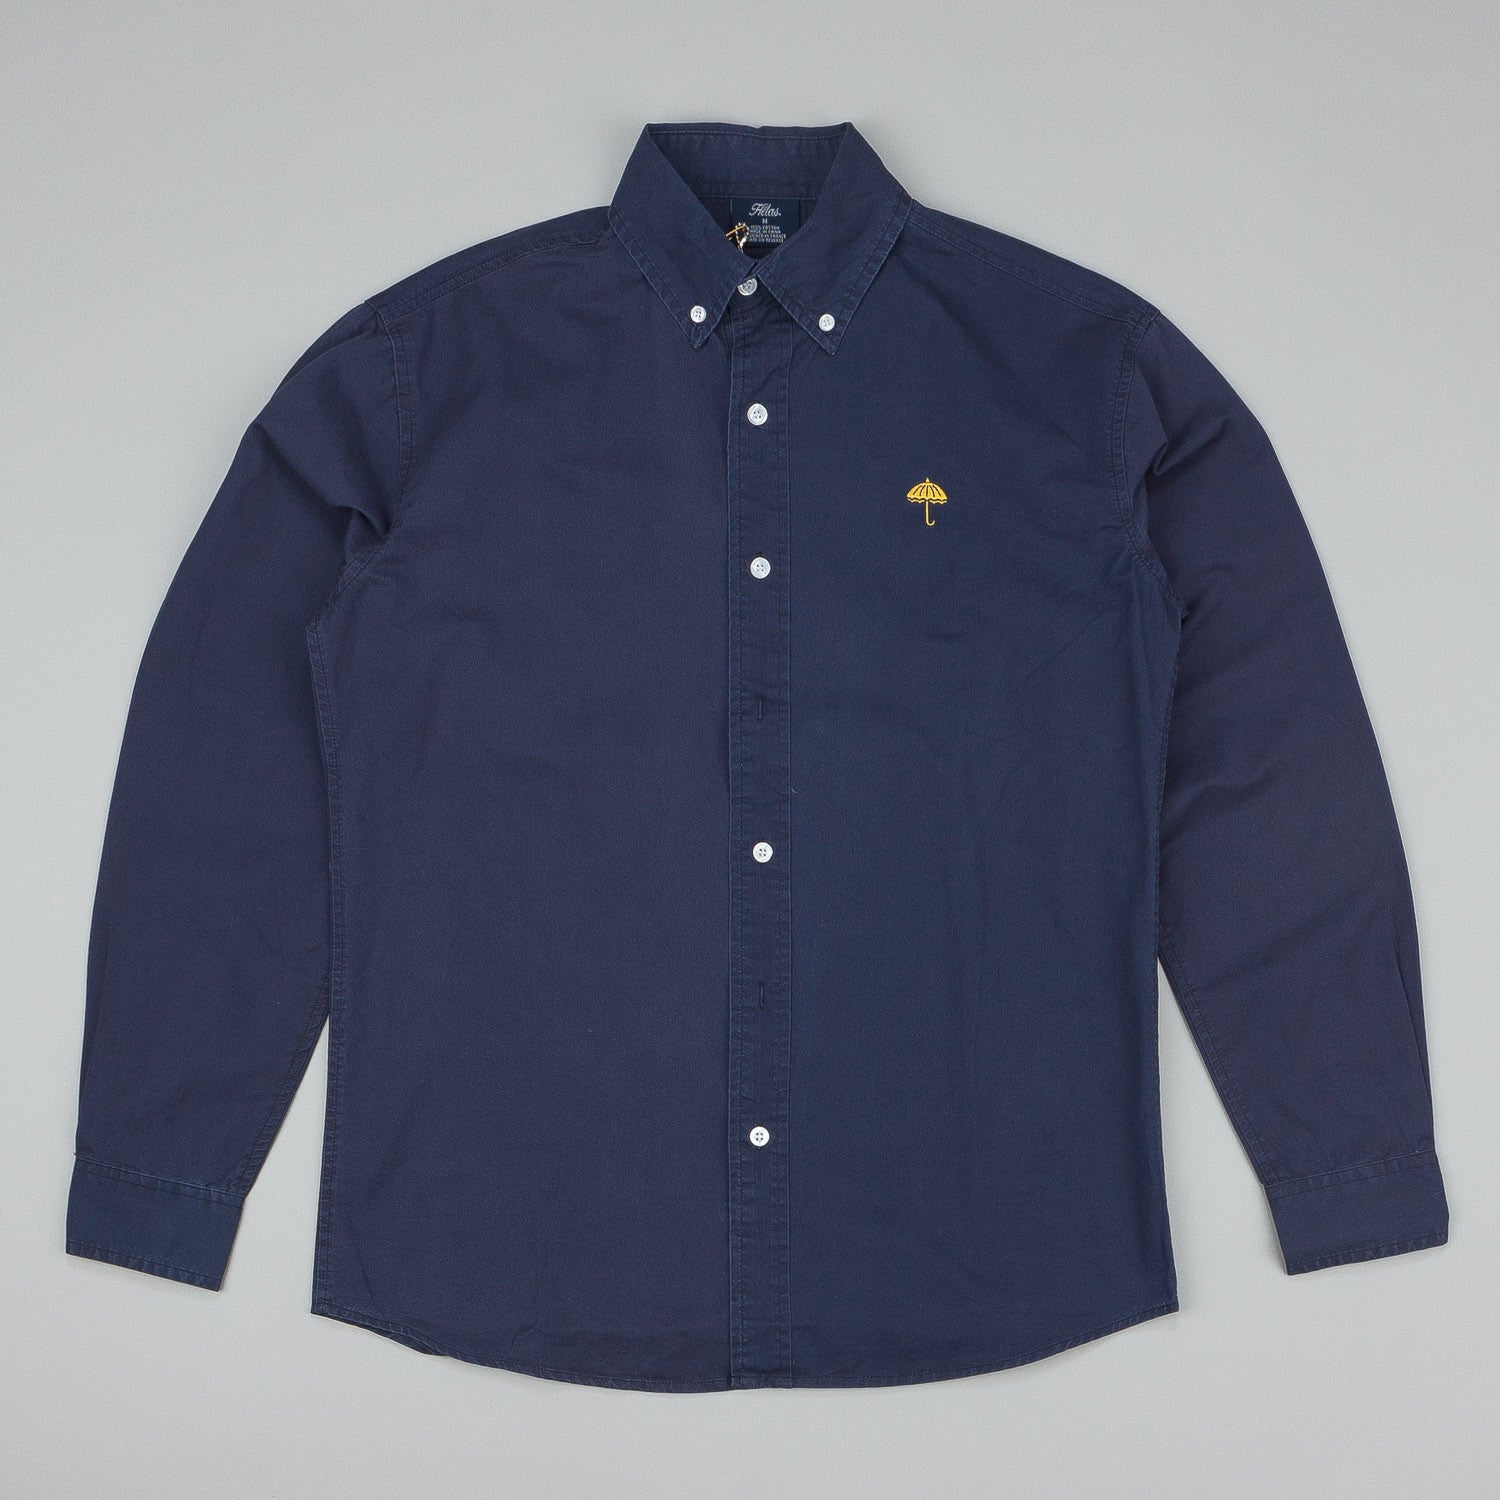 Helas Classic Long Sleeve Button Shirt